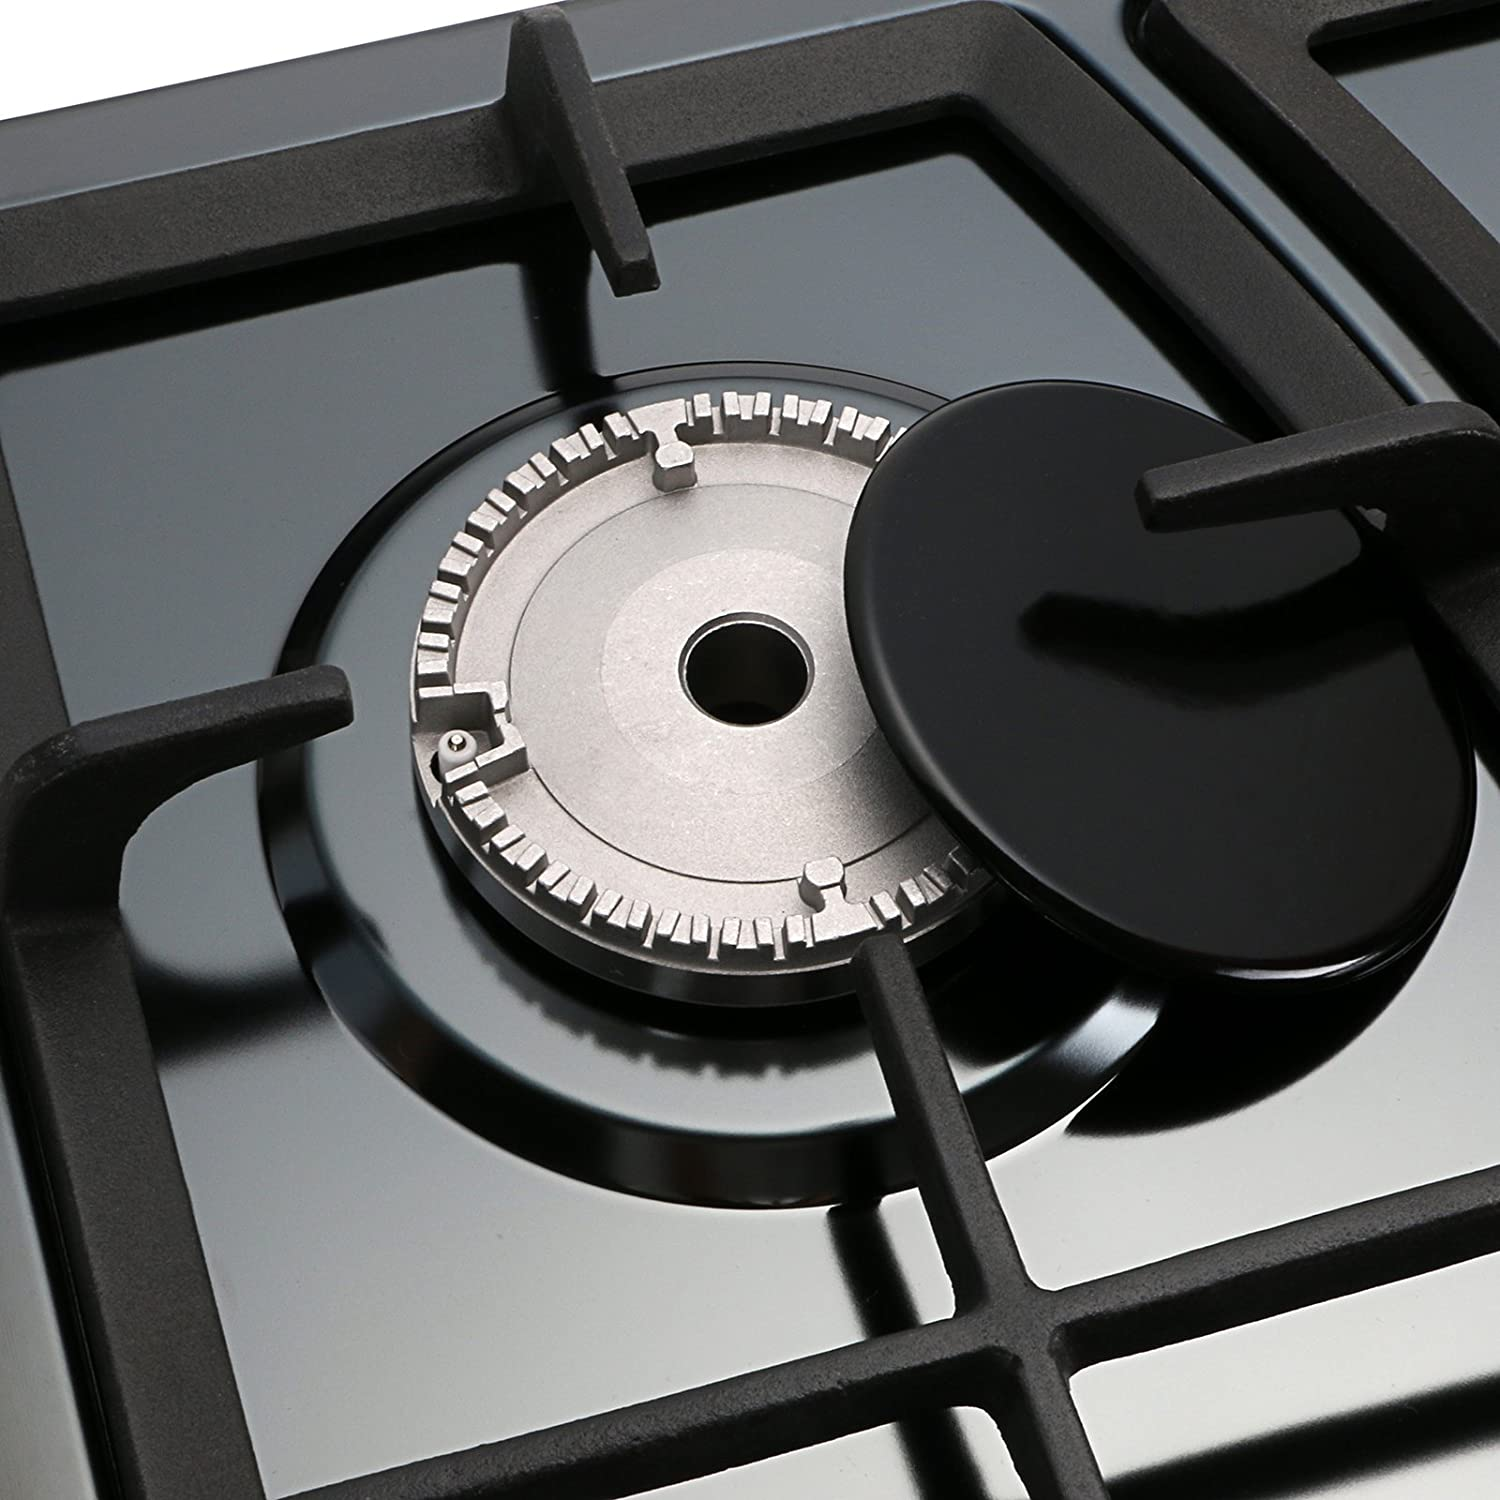 Windmax 30 Inchs Black Titanium Stainless Steel 5 Burners Built-In Stoves NG//LPG Cooktop Cookware